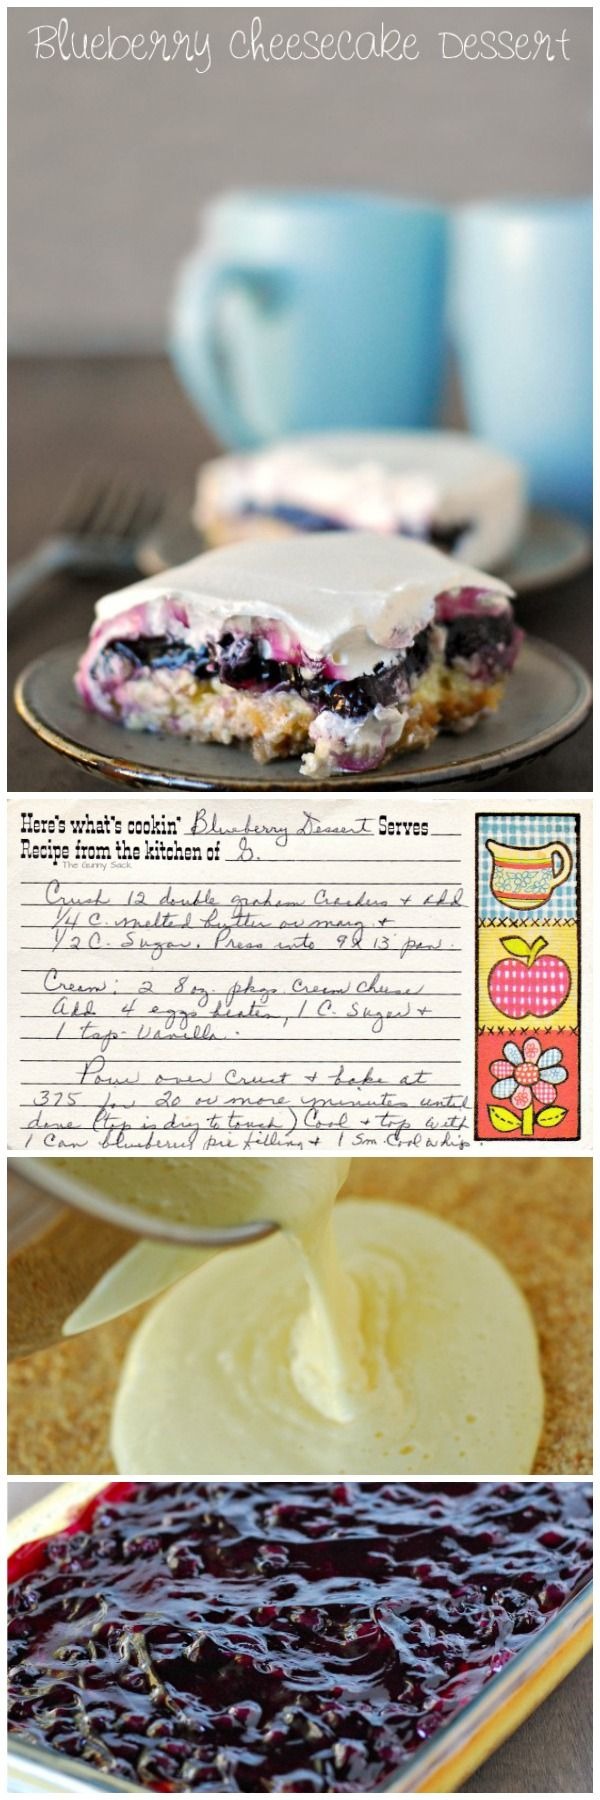 Easy and delicious Blueberry Cheesecake Dessert recipe.